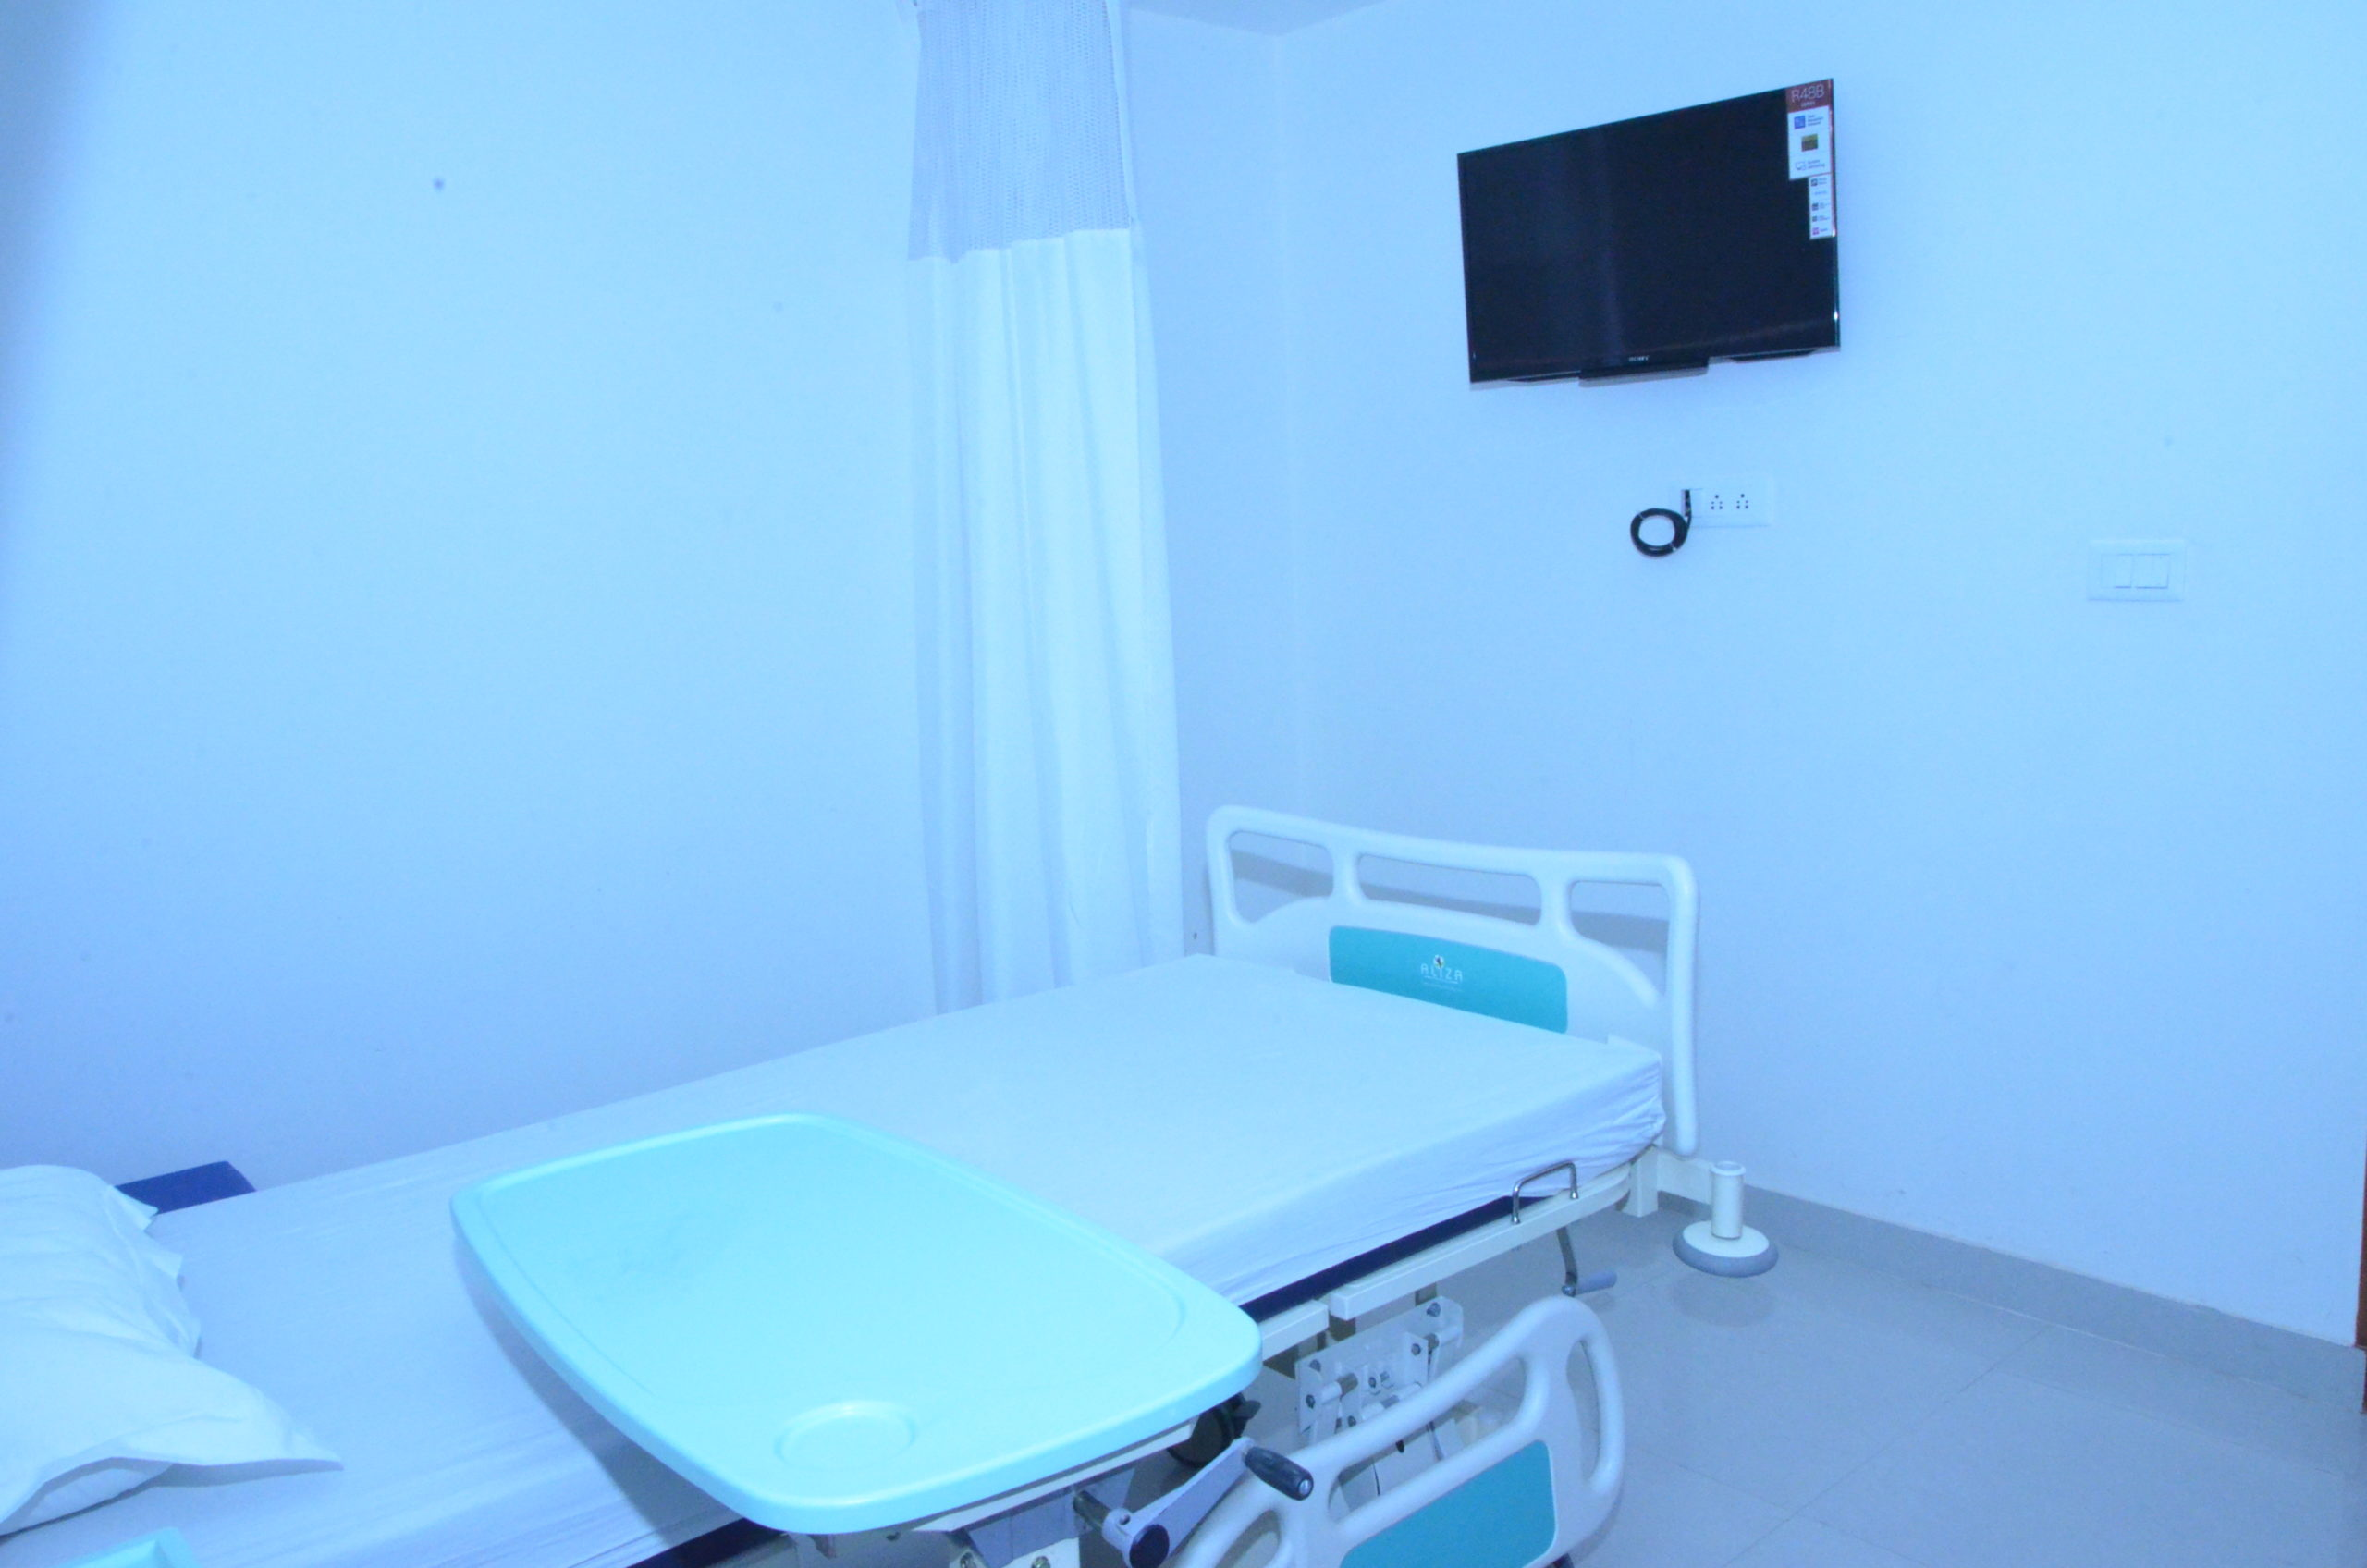 sci ivf clinic room